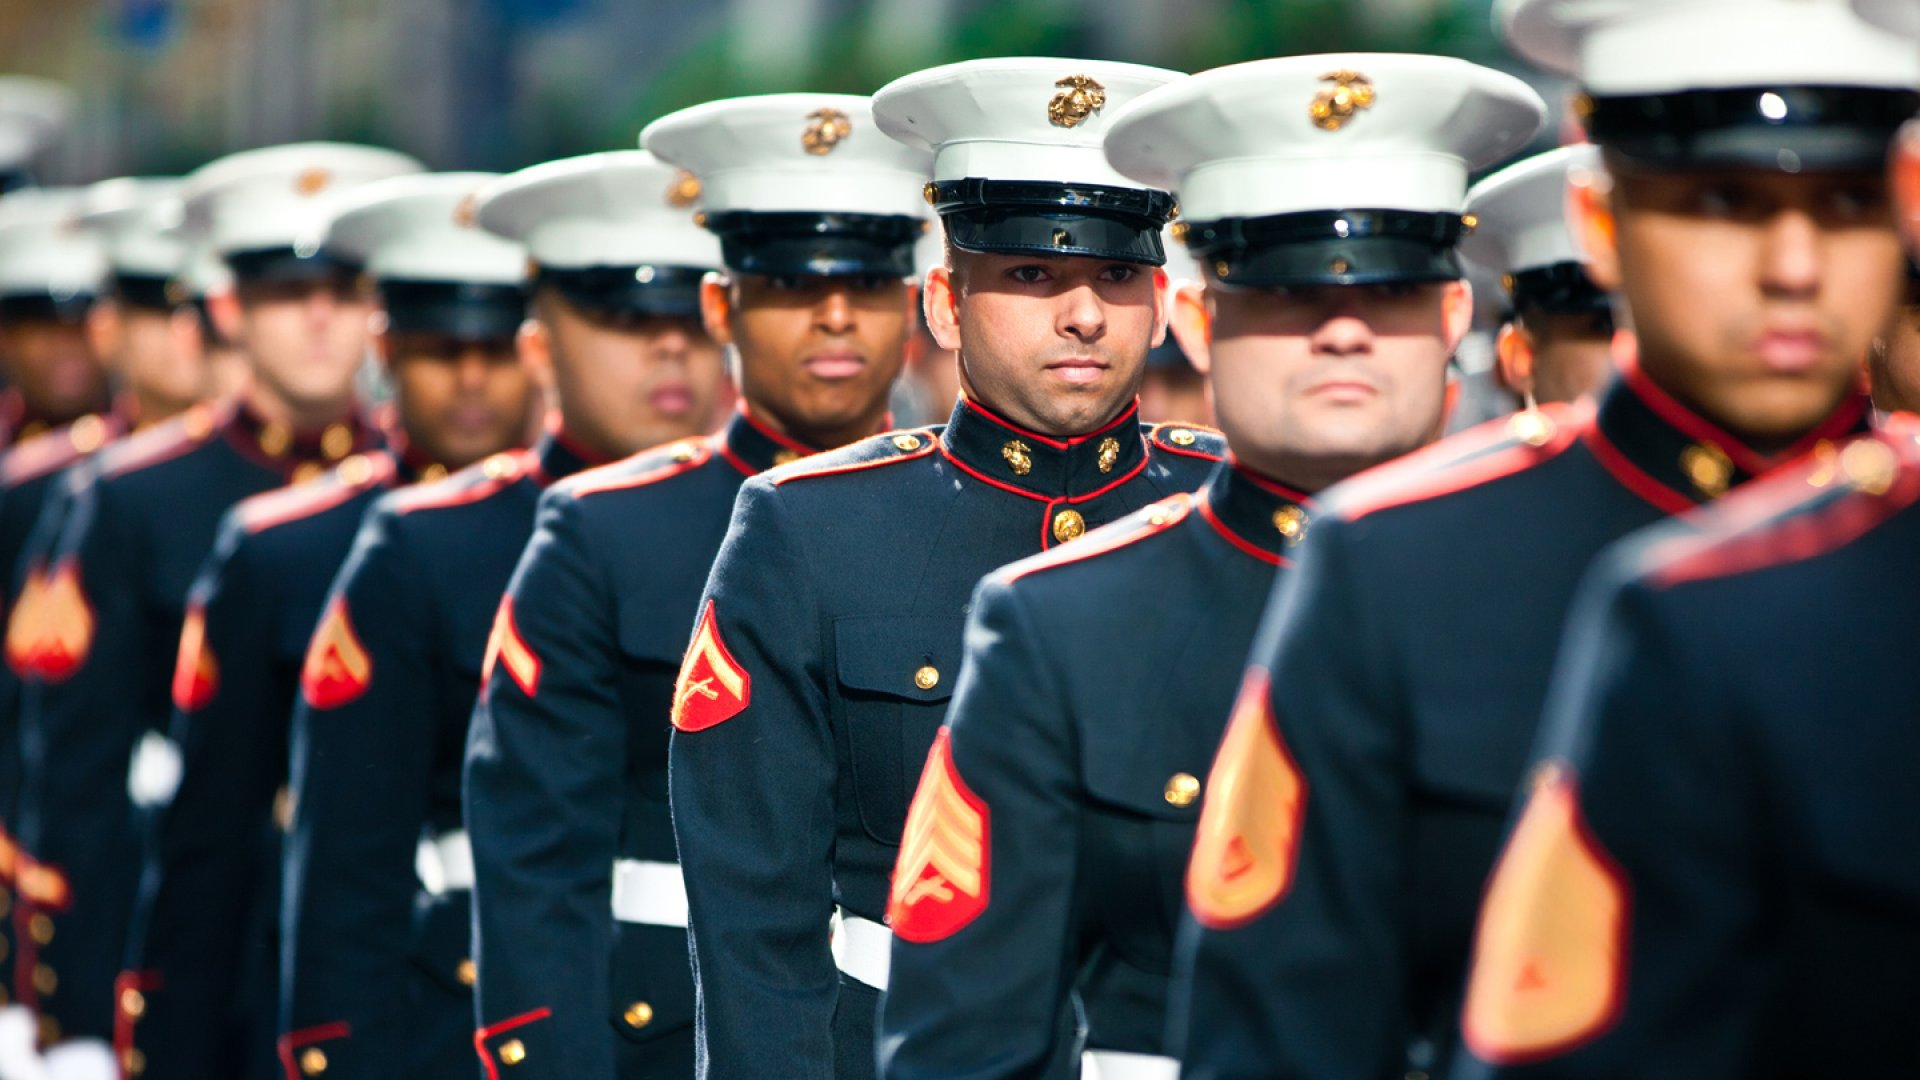 10 Reasons to Hire a Veteran Today